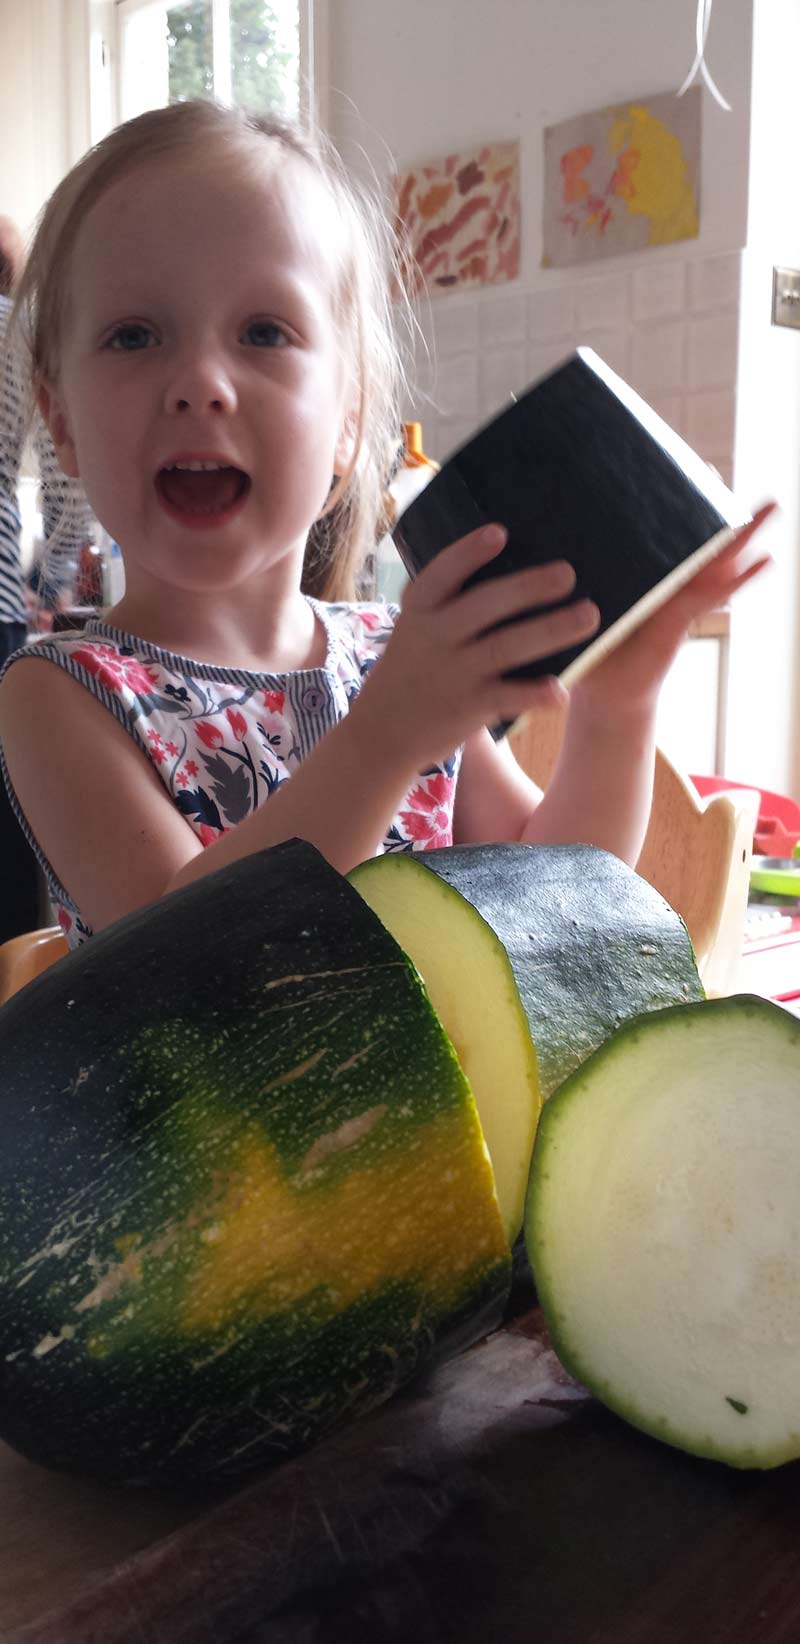 Growing courgettes with kids - courgettes are great fun to grow with kids as they are super easy, make scrumptious chocolate cake and are a wonderful opportunity to learn about plant science and pollination #courgette #zucchini #growingvegetables #gardeningwithkids #gardenwithkids #plantscience #pollination